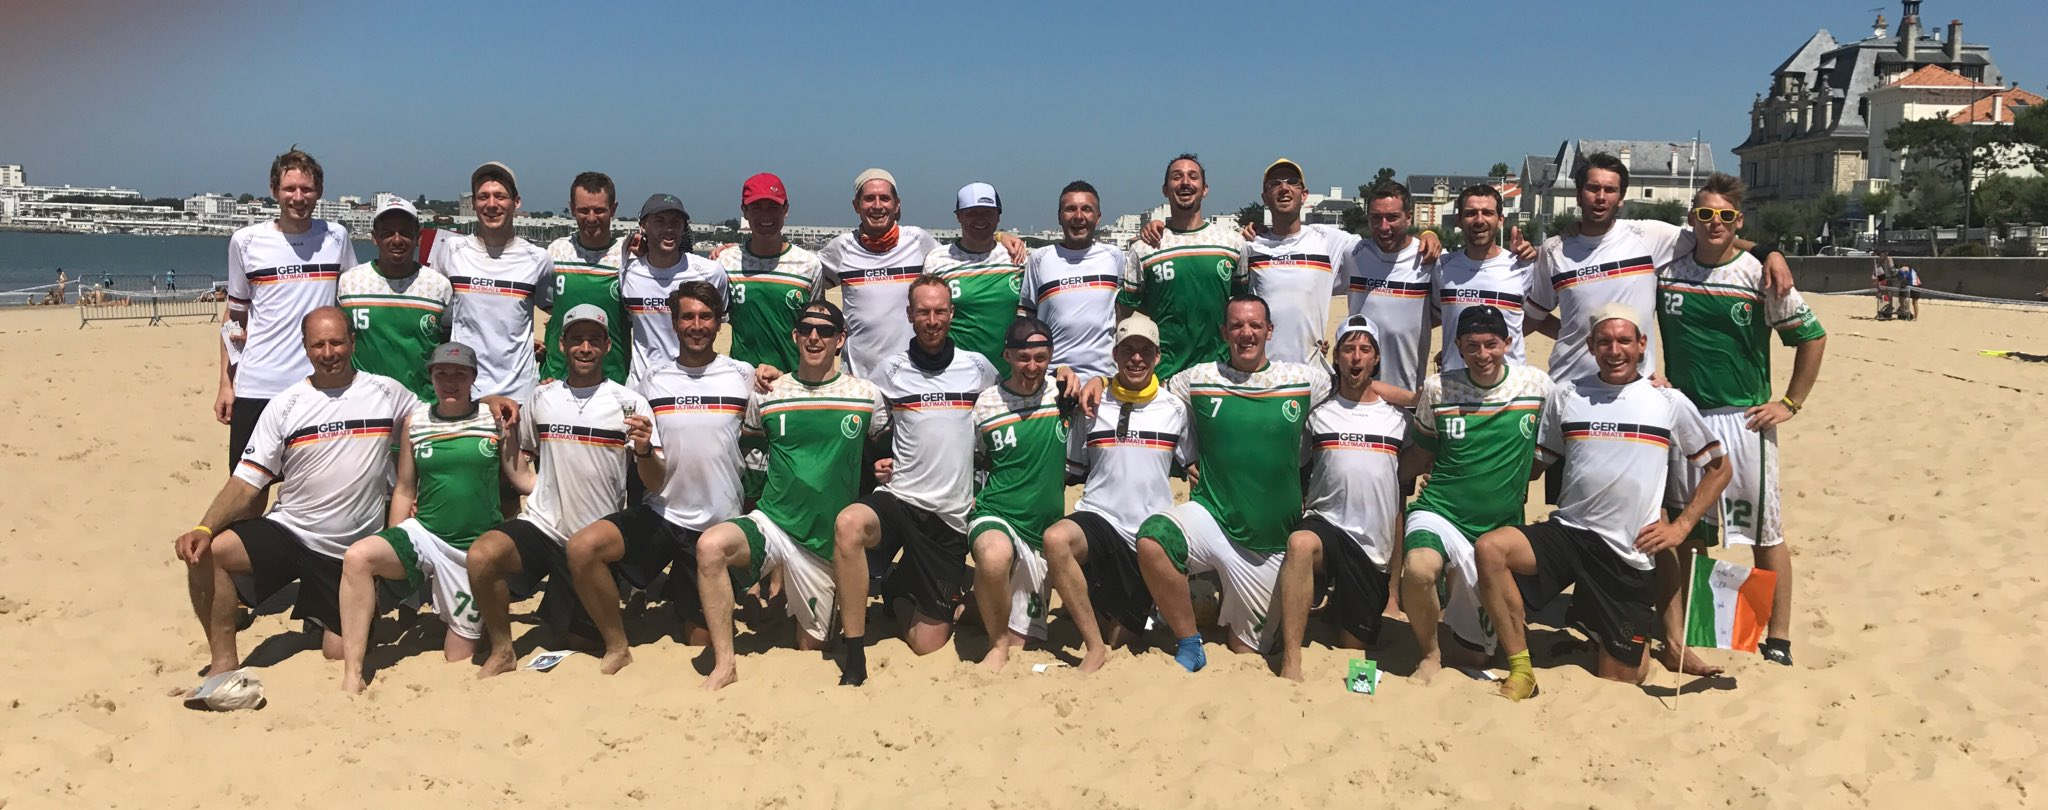 #WCBU2017 #IRL came out strong, but #GER carried it home 13:3 #MMEN #wiseandstrong https://t.co/4TXjLGeXwe <a href='https://twitter.com/Germany_WCBU/status/876744823440642048/photo/1' target='_blank'>See original &raquo;</a>